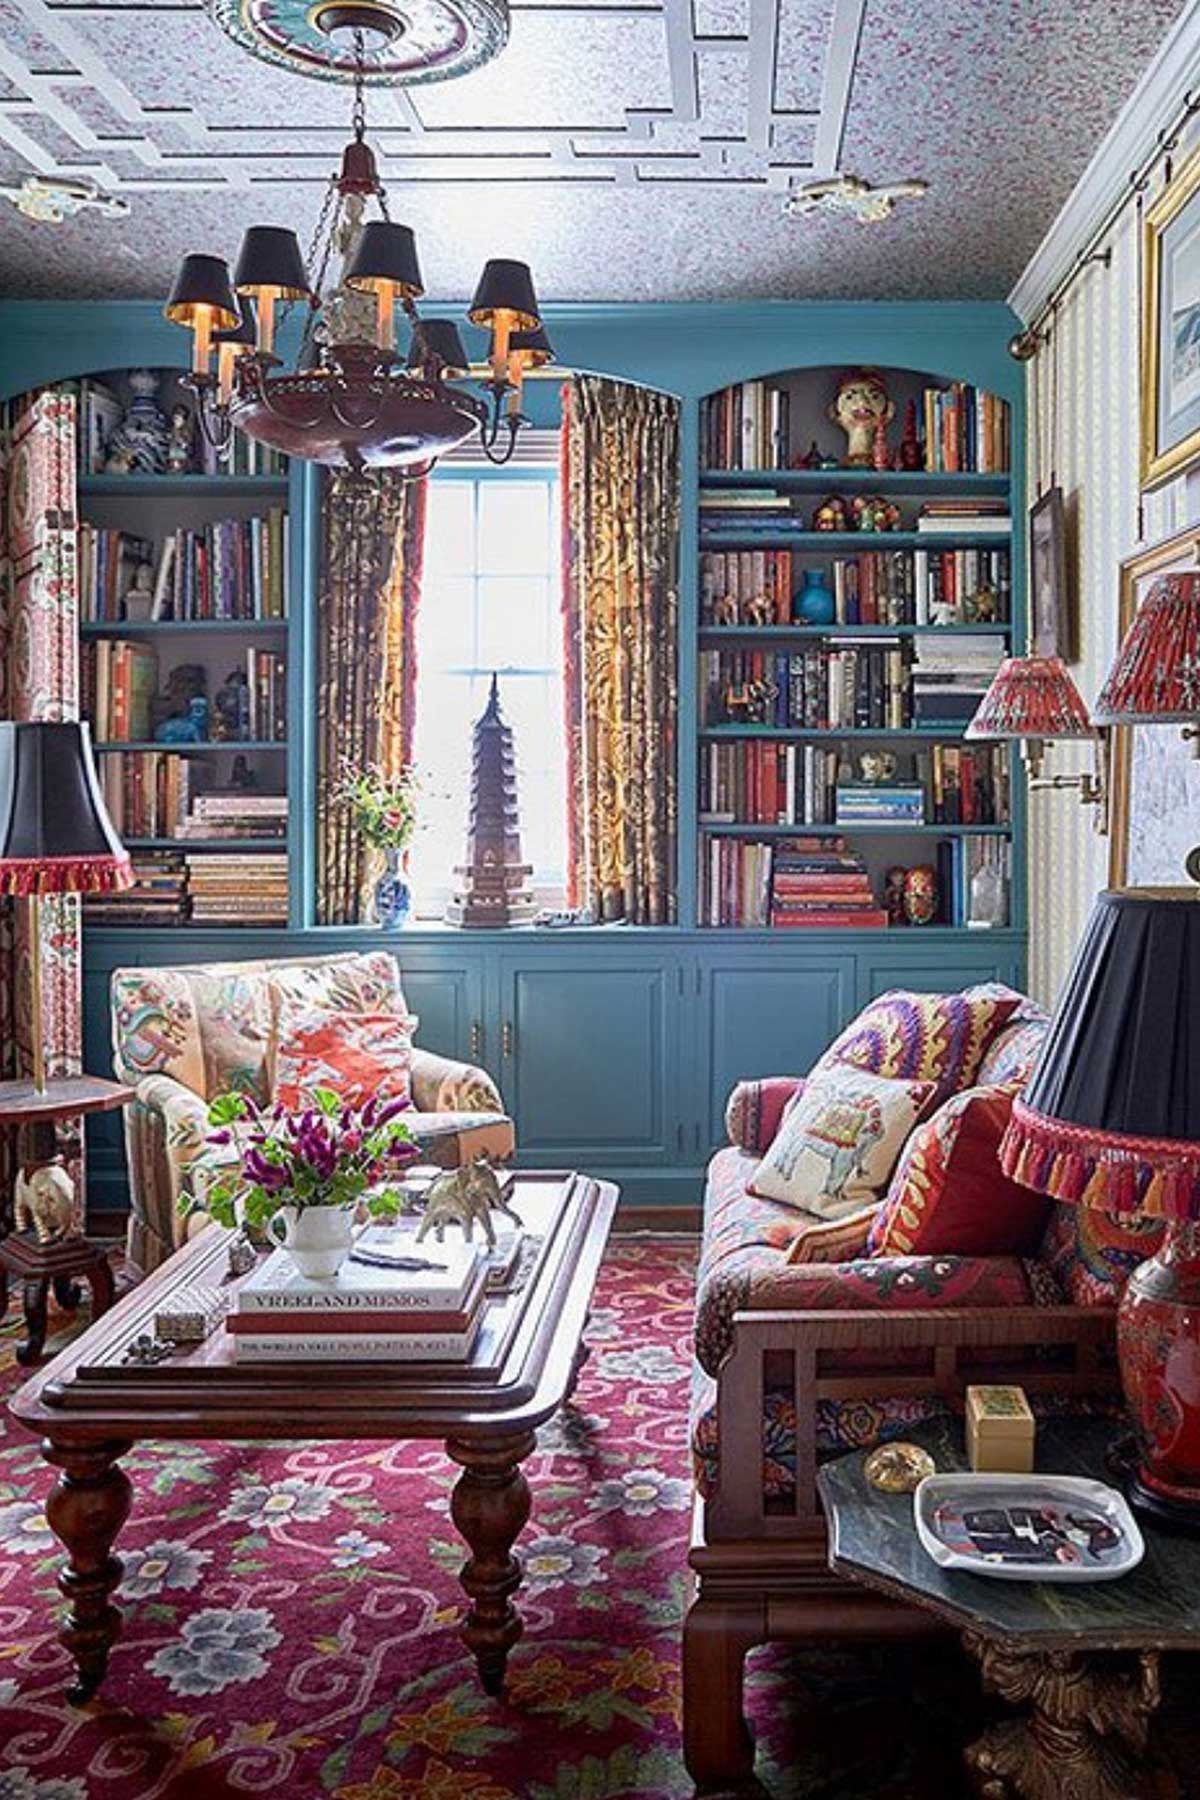 Cheap Antique Looking Furniture Luxury Vintage Interior Design Achieve A Vintage Style without the